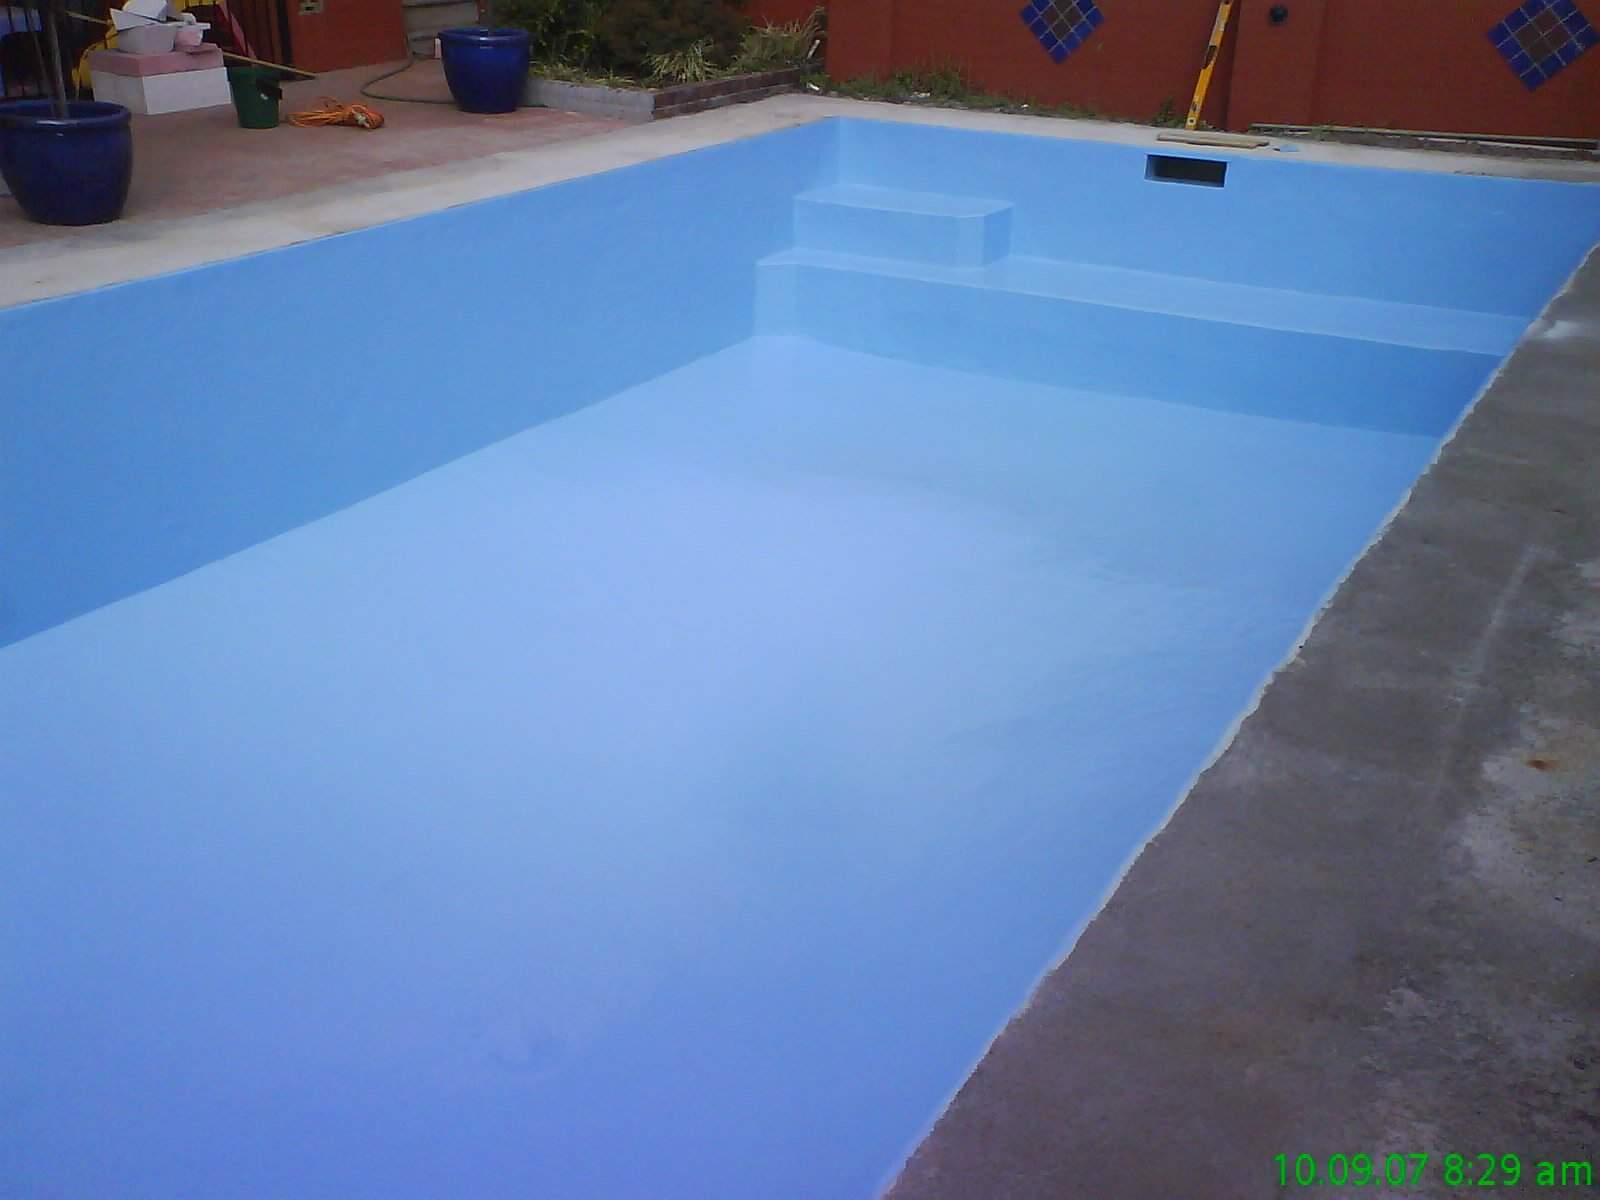 View of the pool with blue colour resurfacing